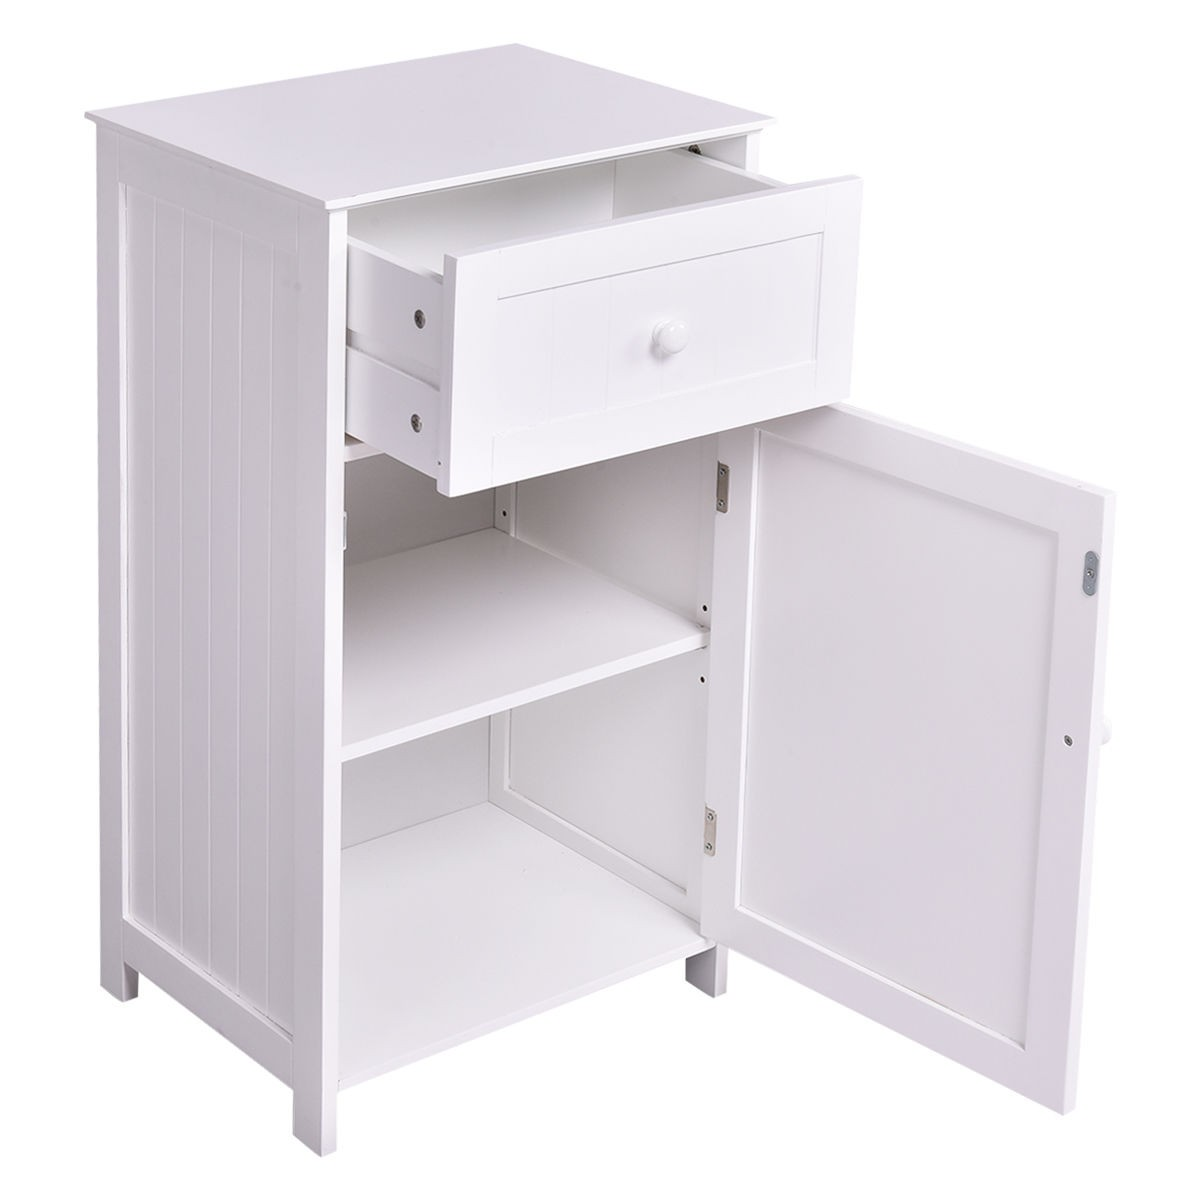 storage cabinet white kitchen bathroom storage cabinet floor stand white wood 26825